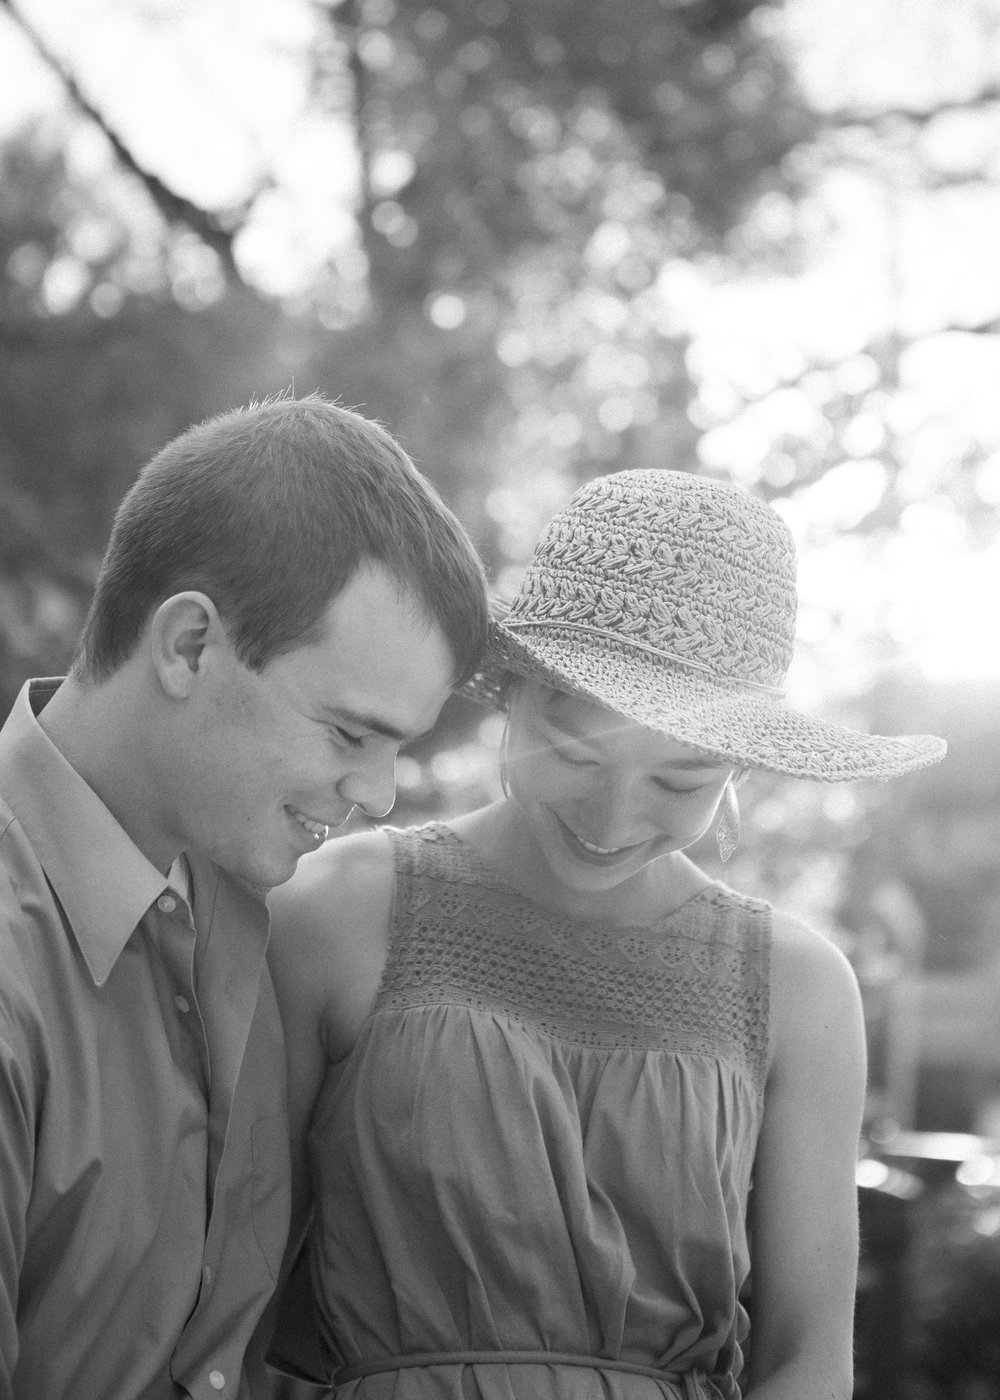 kmulhern_photography_david_and_martha_engagement_session_2013_111.jpg